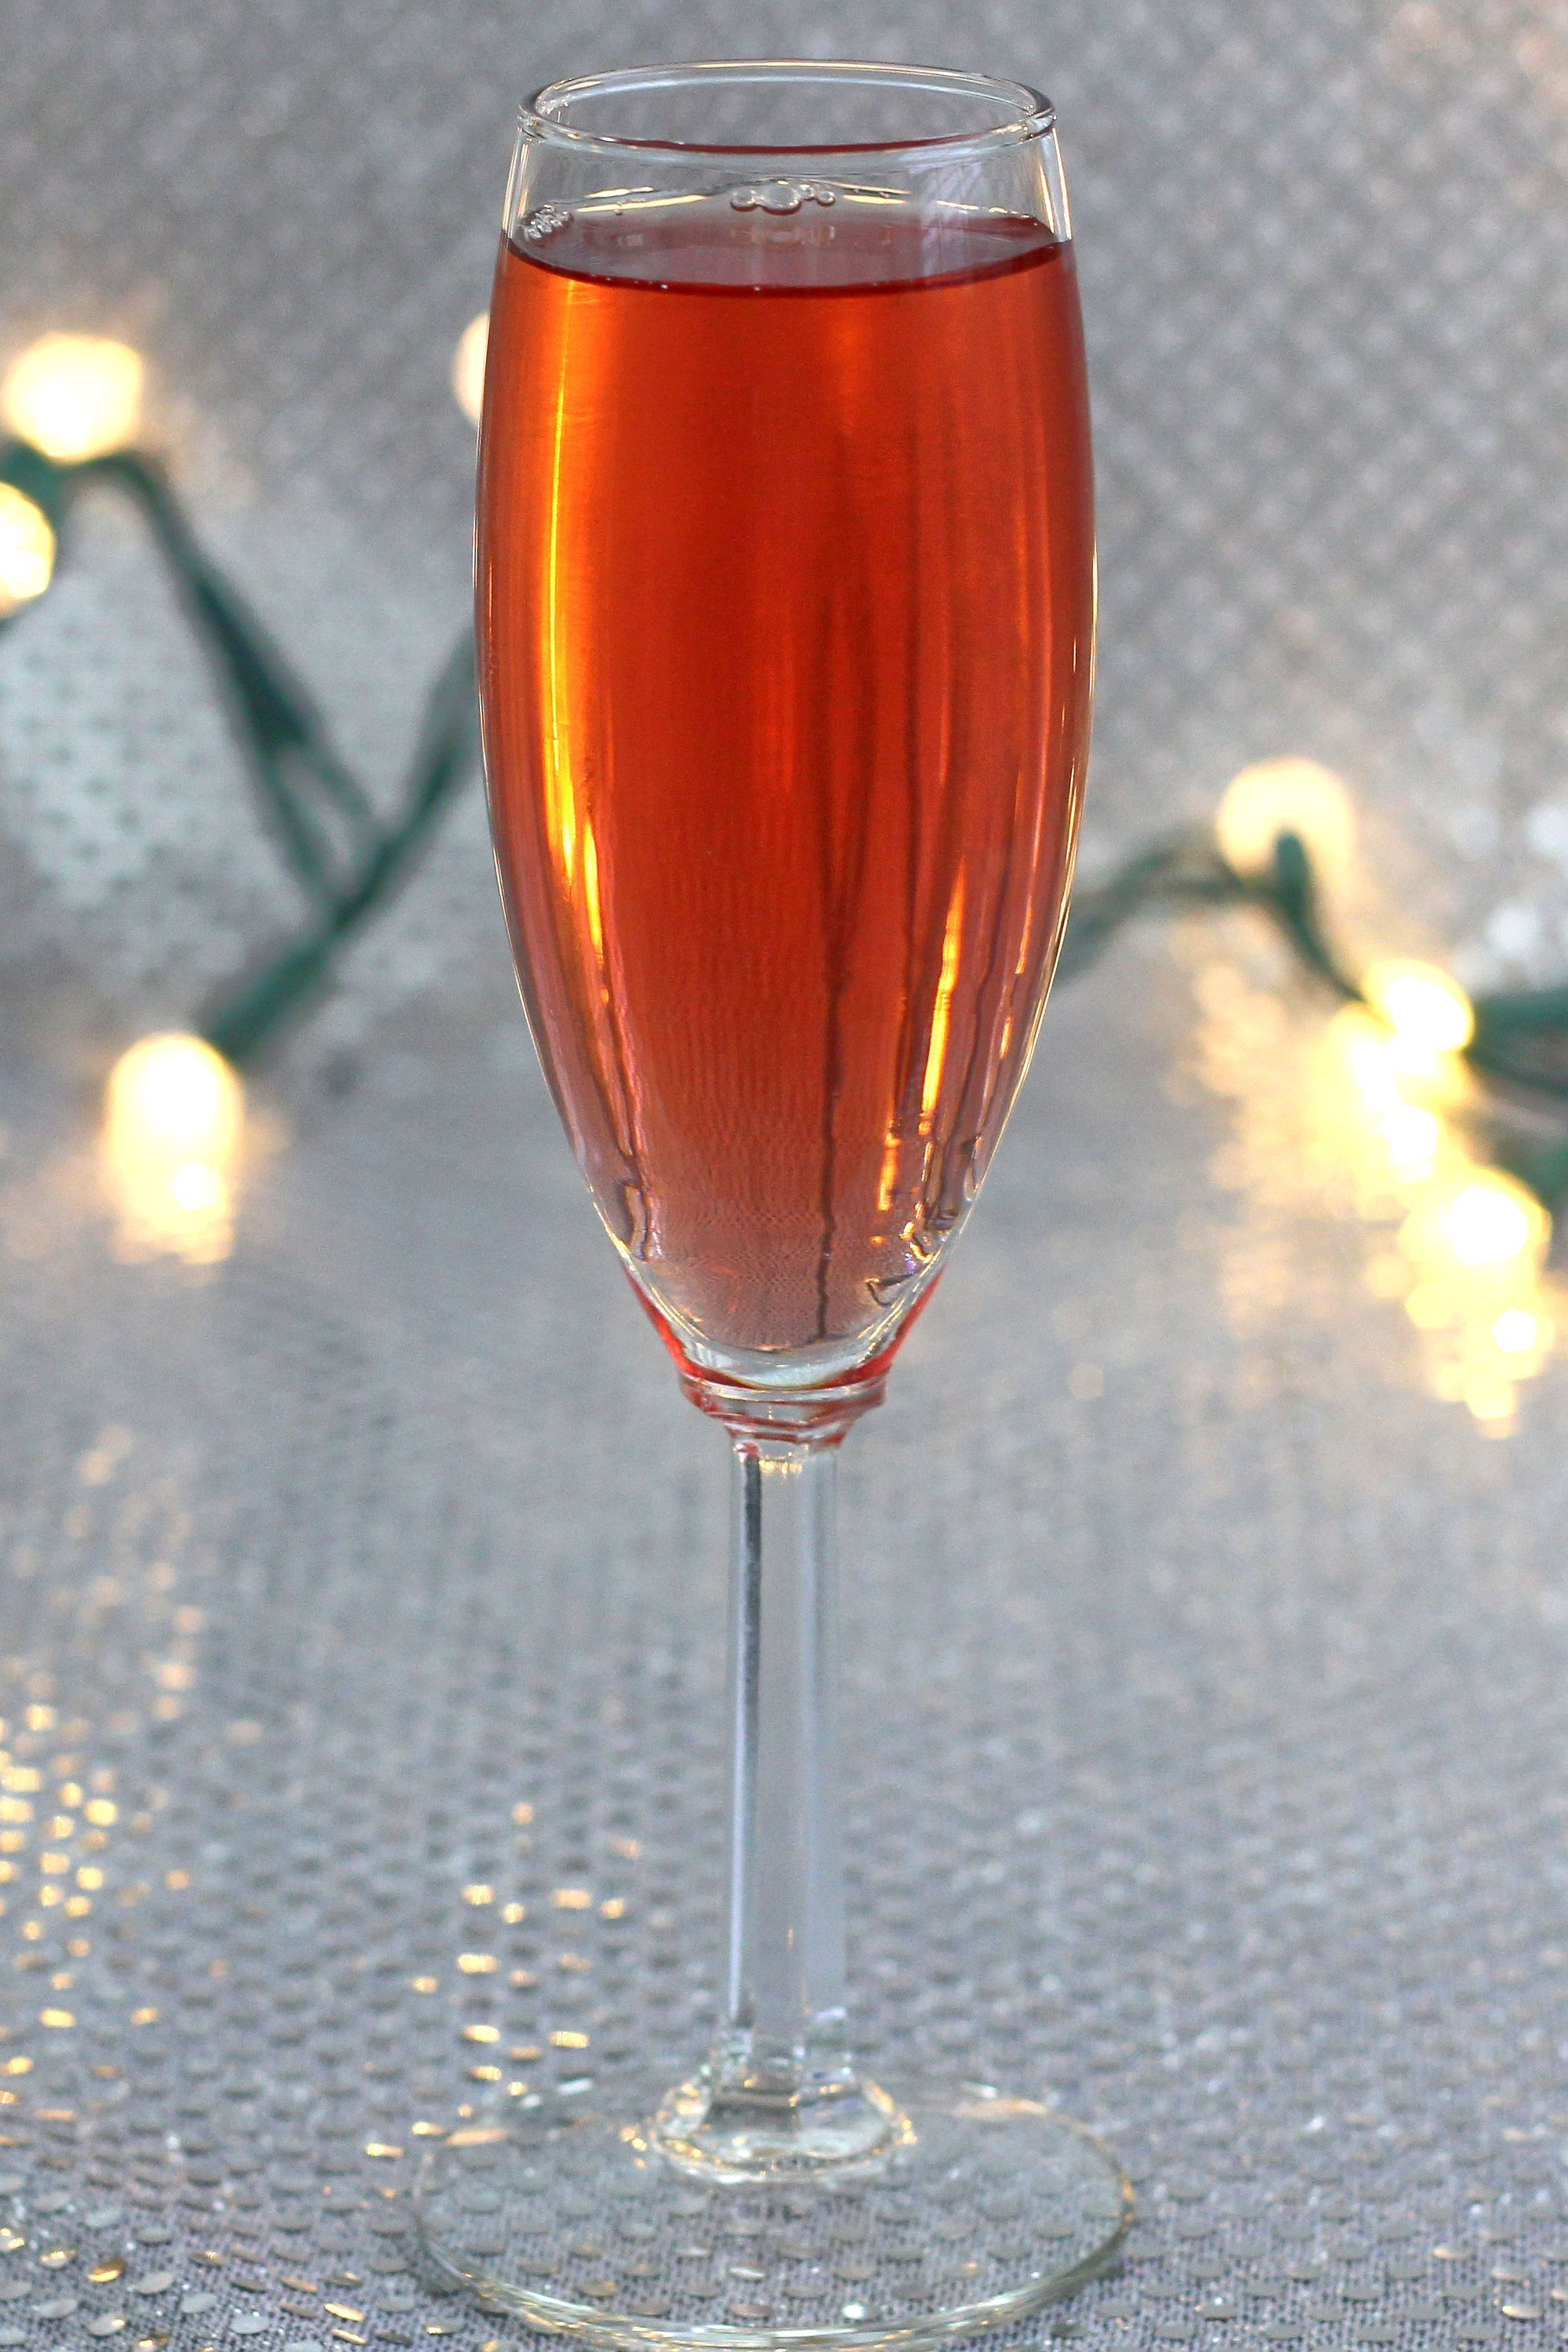 Poinsettia Drink A Champagne Cocktail Recipe Poinsettia Drink Alcoholic Cocktails Champagne Cocktail